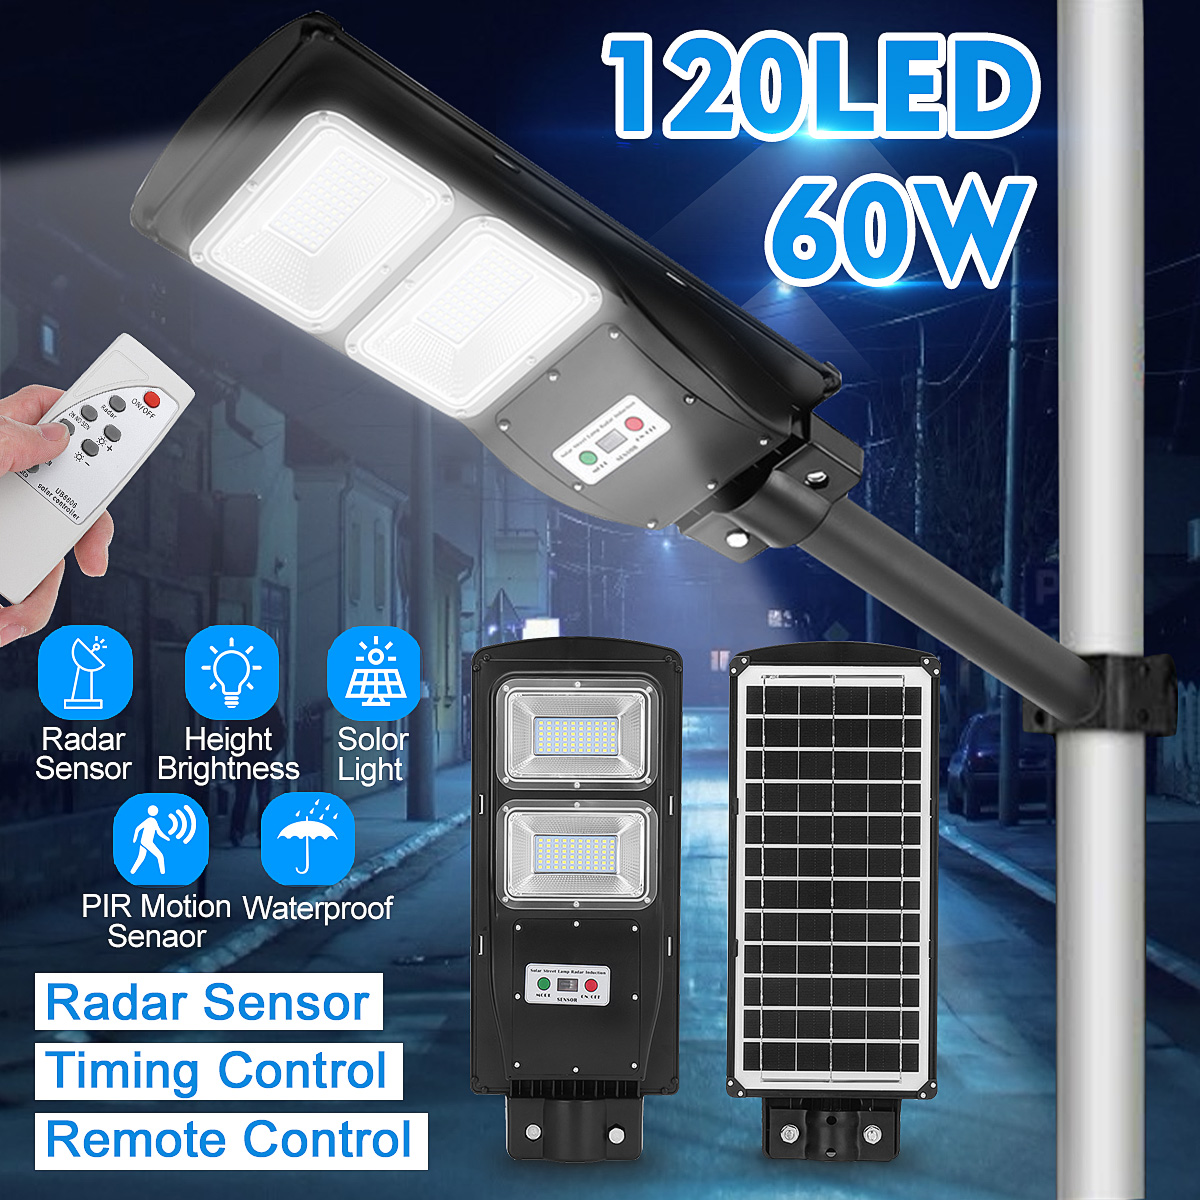 Remote Control LED Street Light 60W LED Solar Light Radar PIR Motion Sensor Wall Timing Lamp Waterproof for Plaza Garden Yard